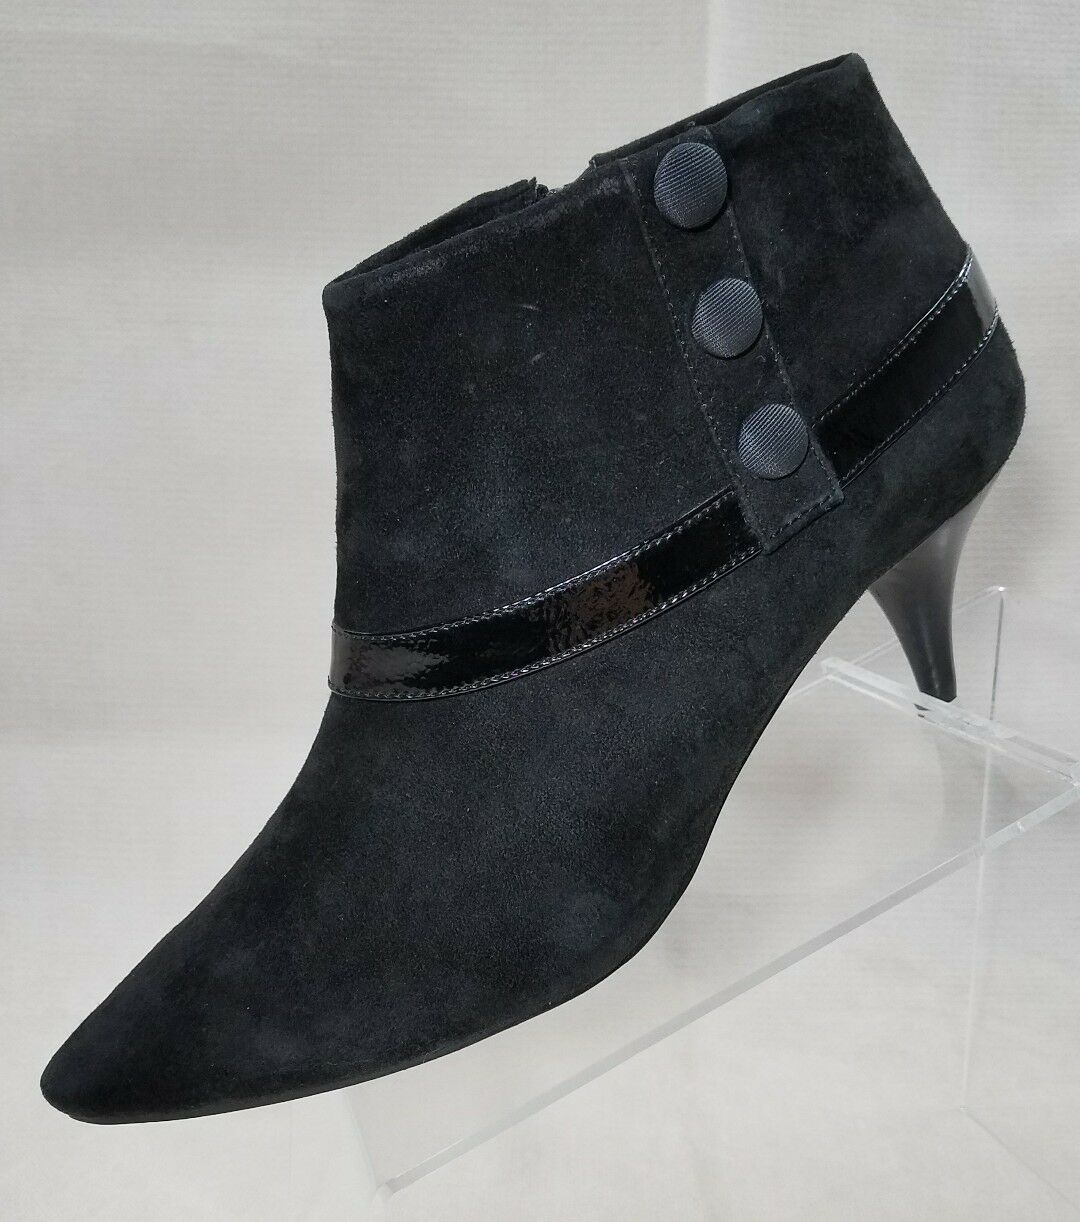 Adrienne Vittadini Women's Jeb Suede Ankle Boot, Black Suede size 9.5M